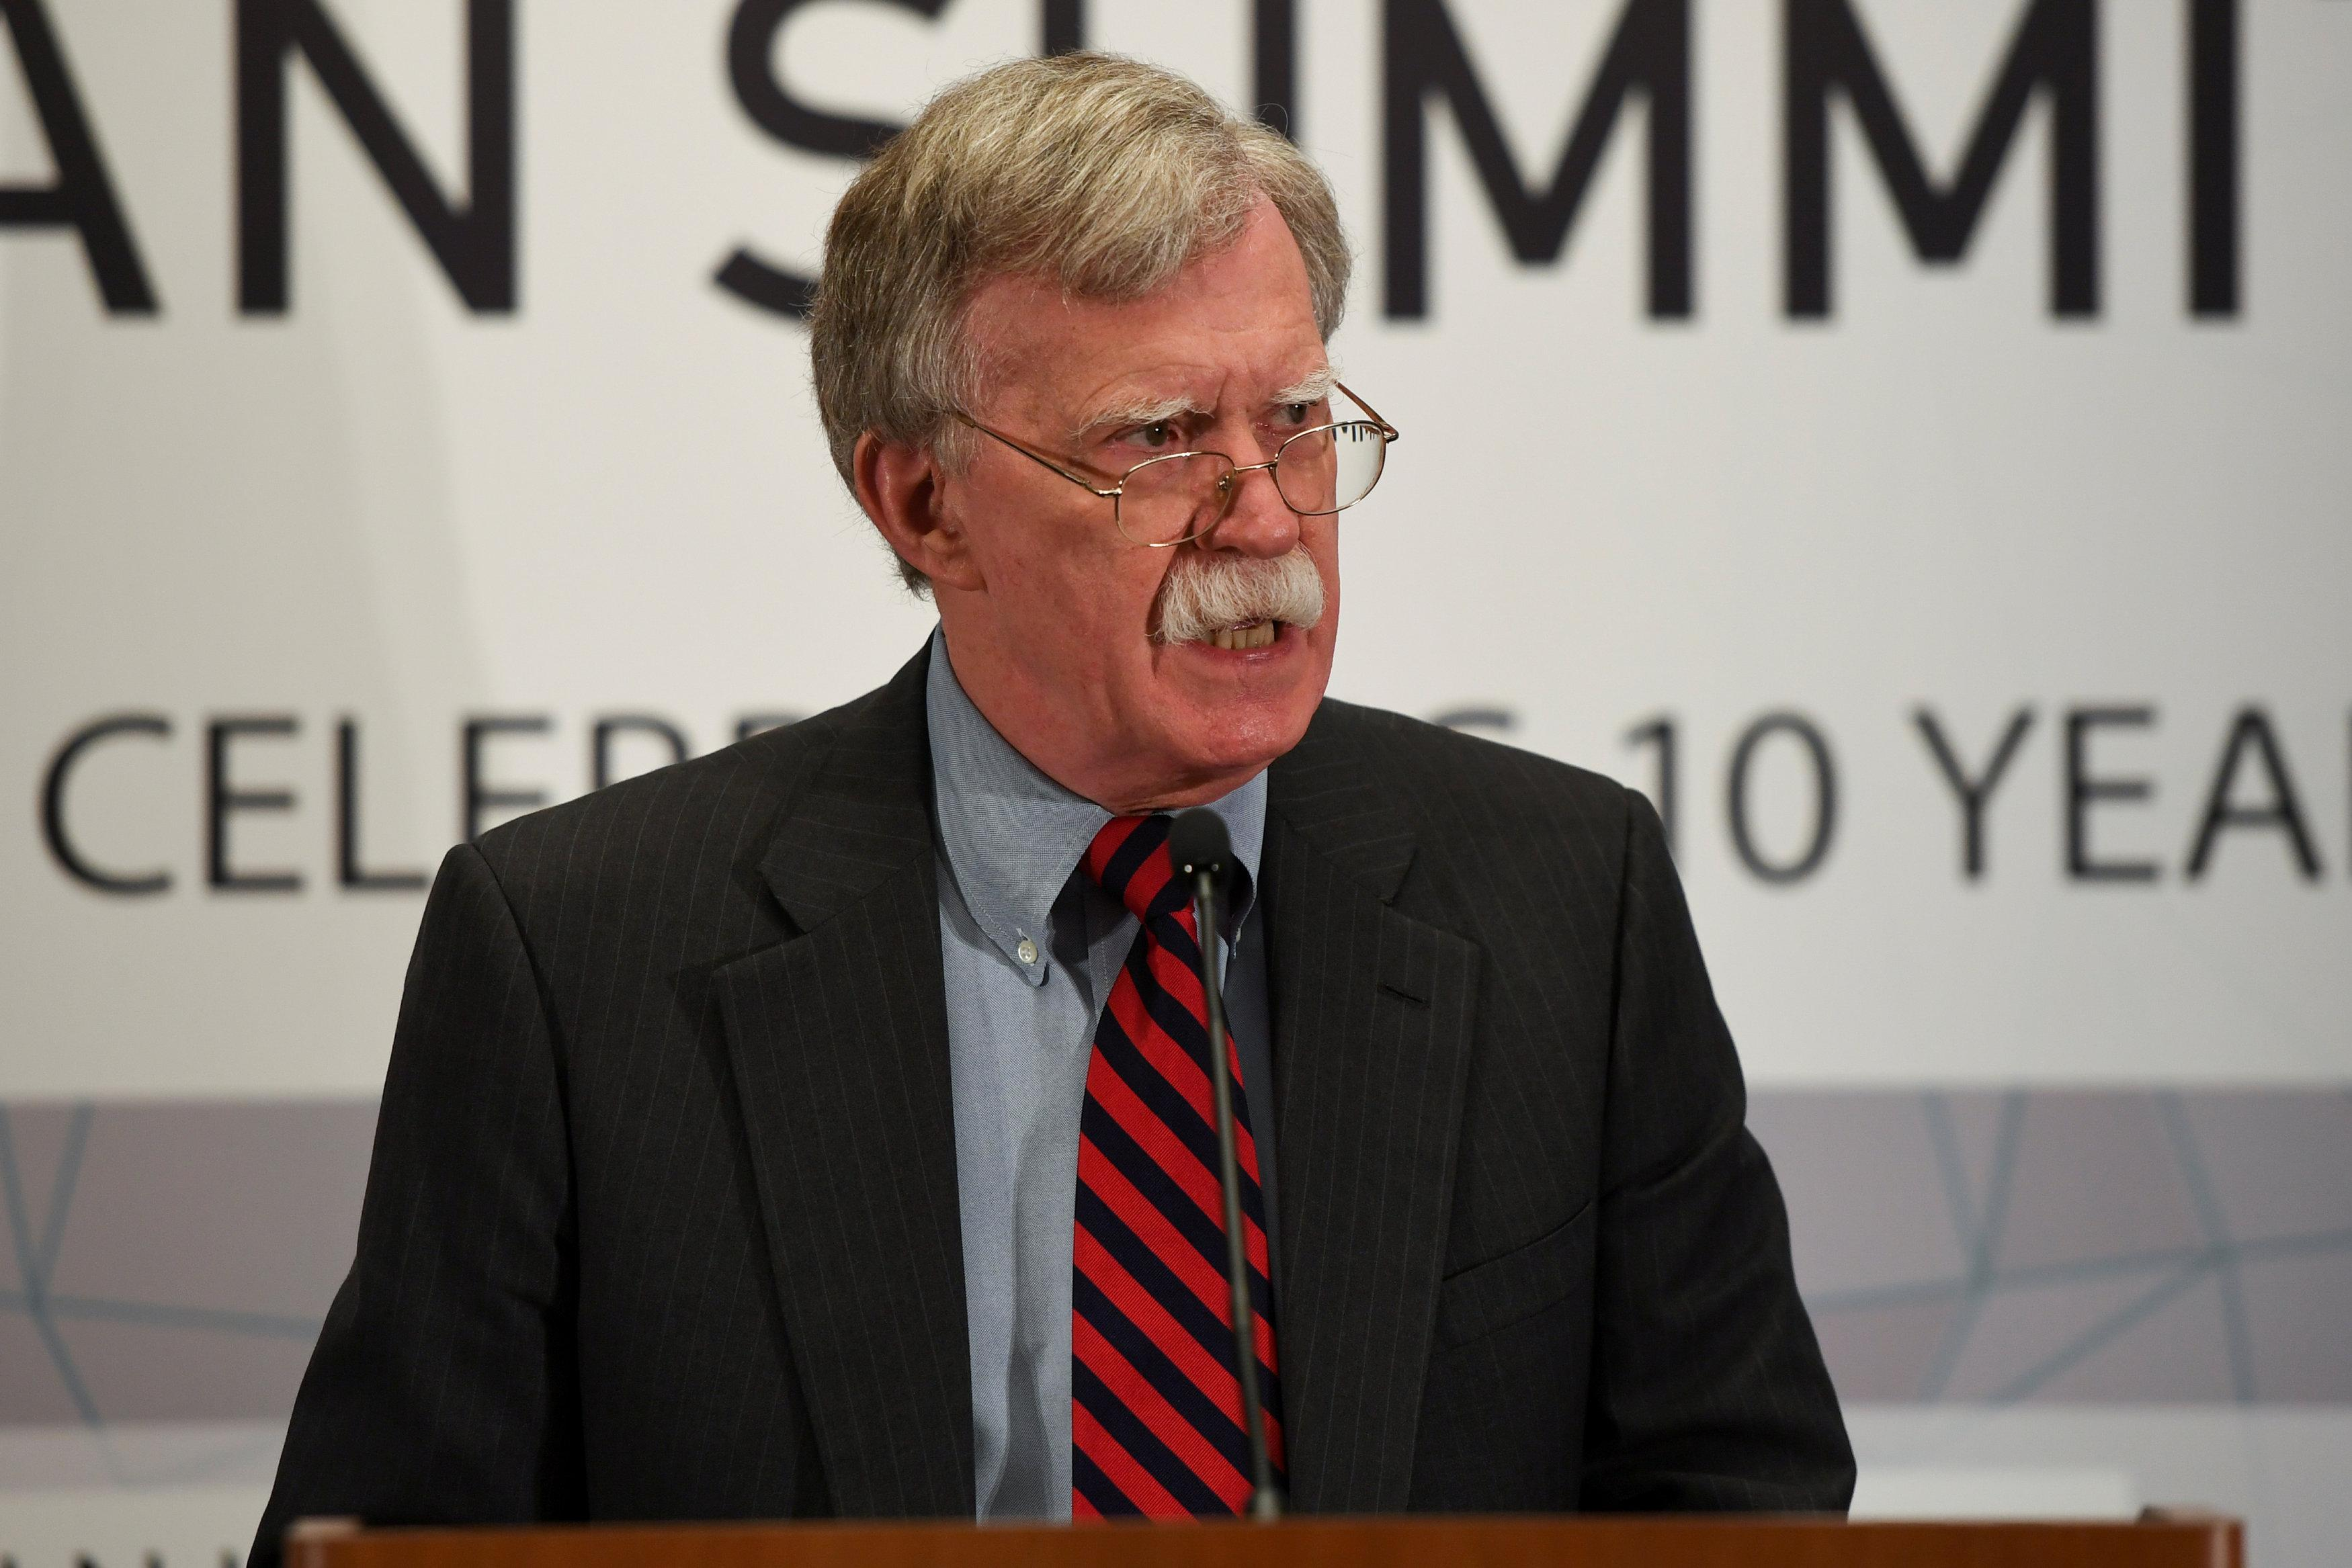 U.S. National Security Advisor John Bolton speaks during the United Against Nuclear Iran Summit on the sidelines of the United Nations General Assembly in New York City, U.S. September 25, 2018. Darren Ornitz